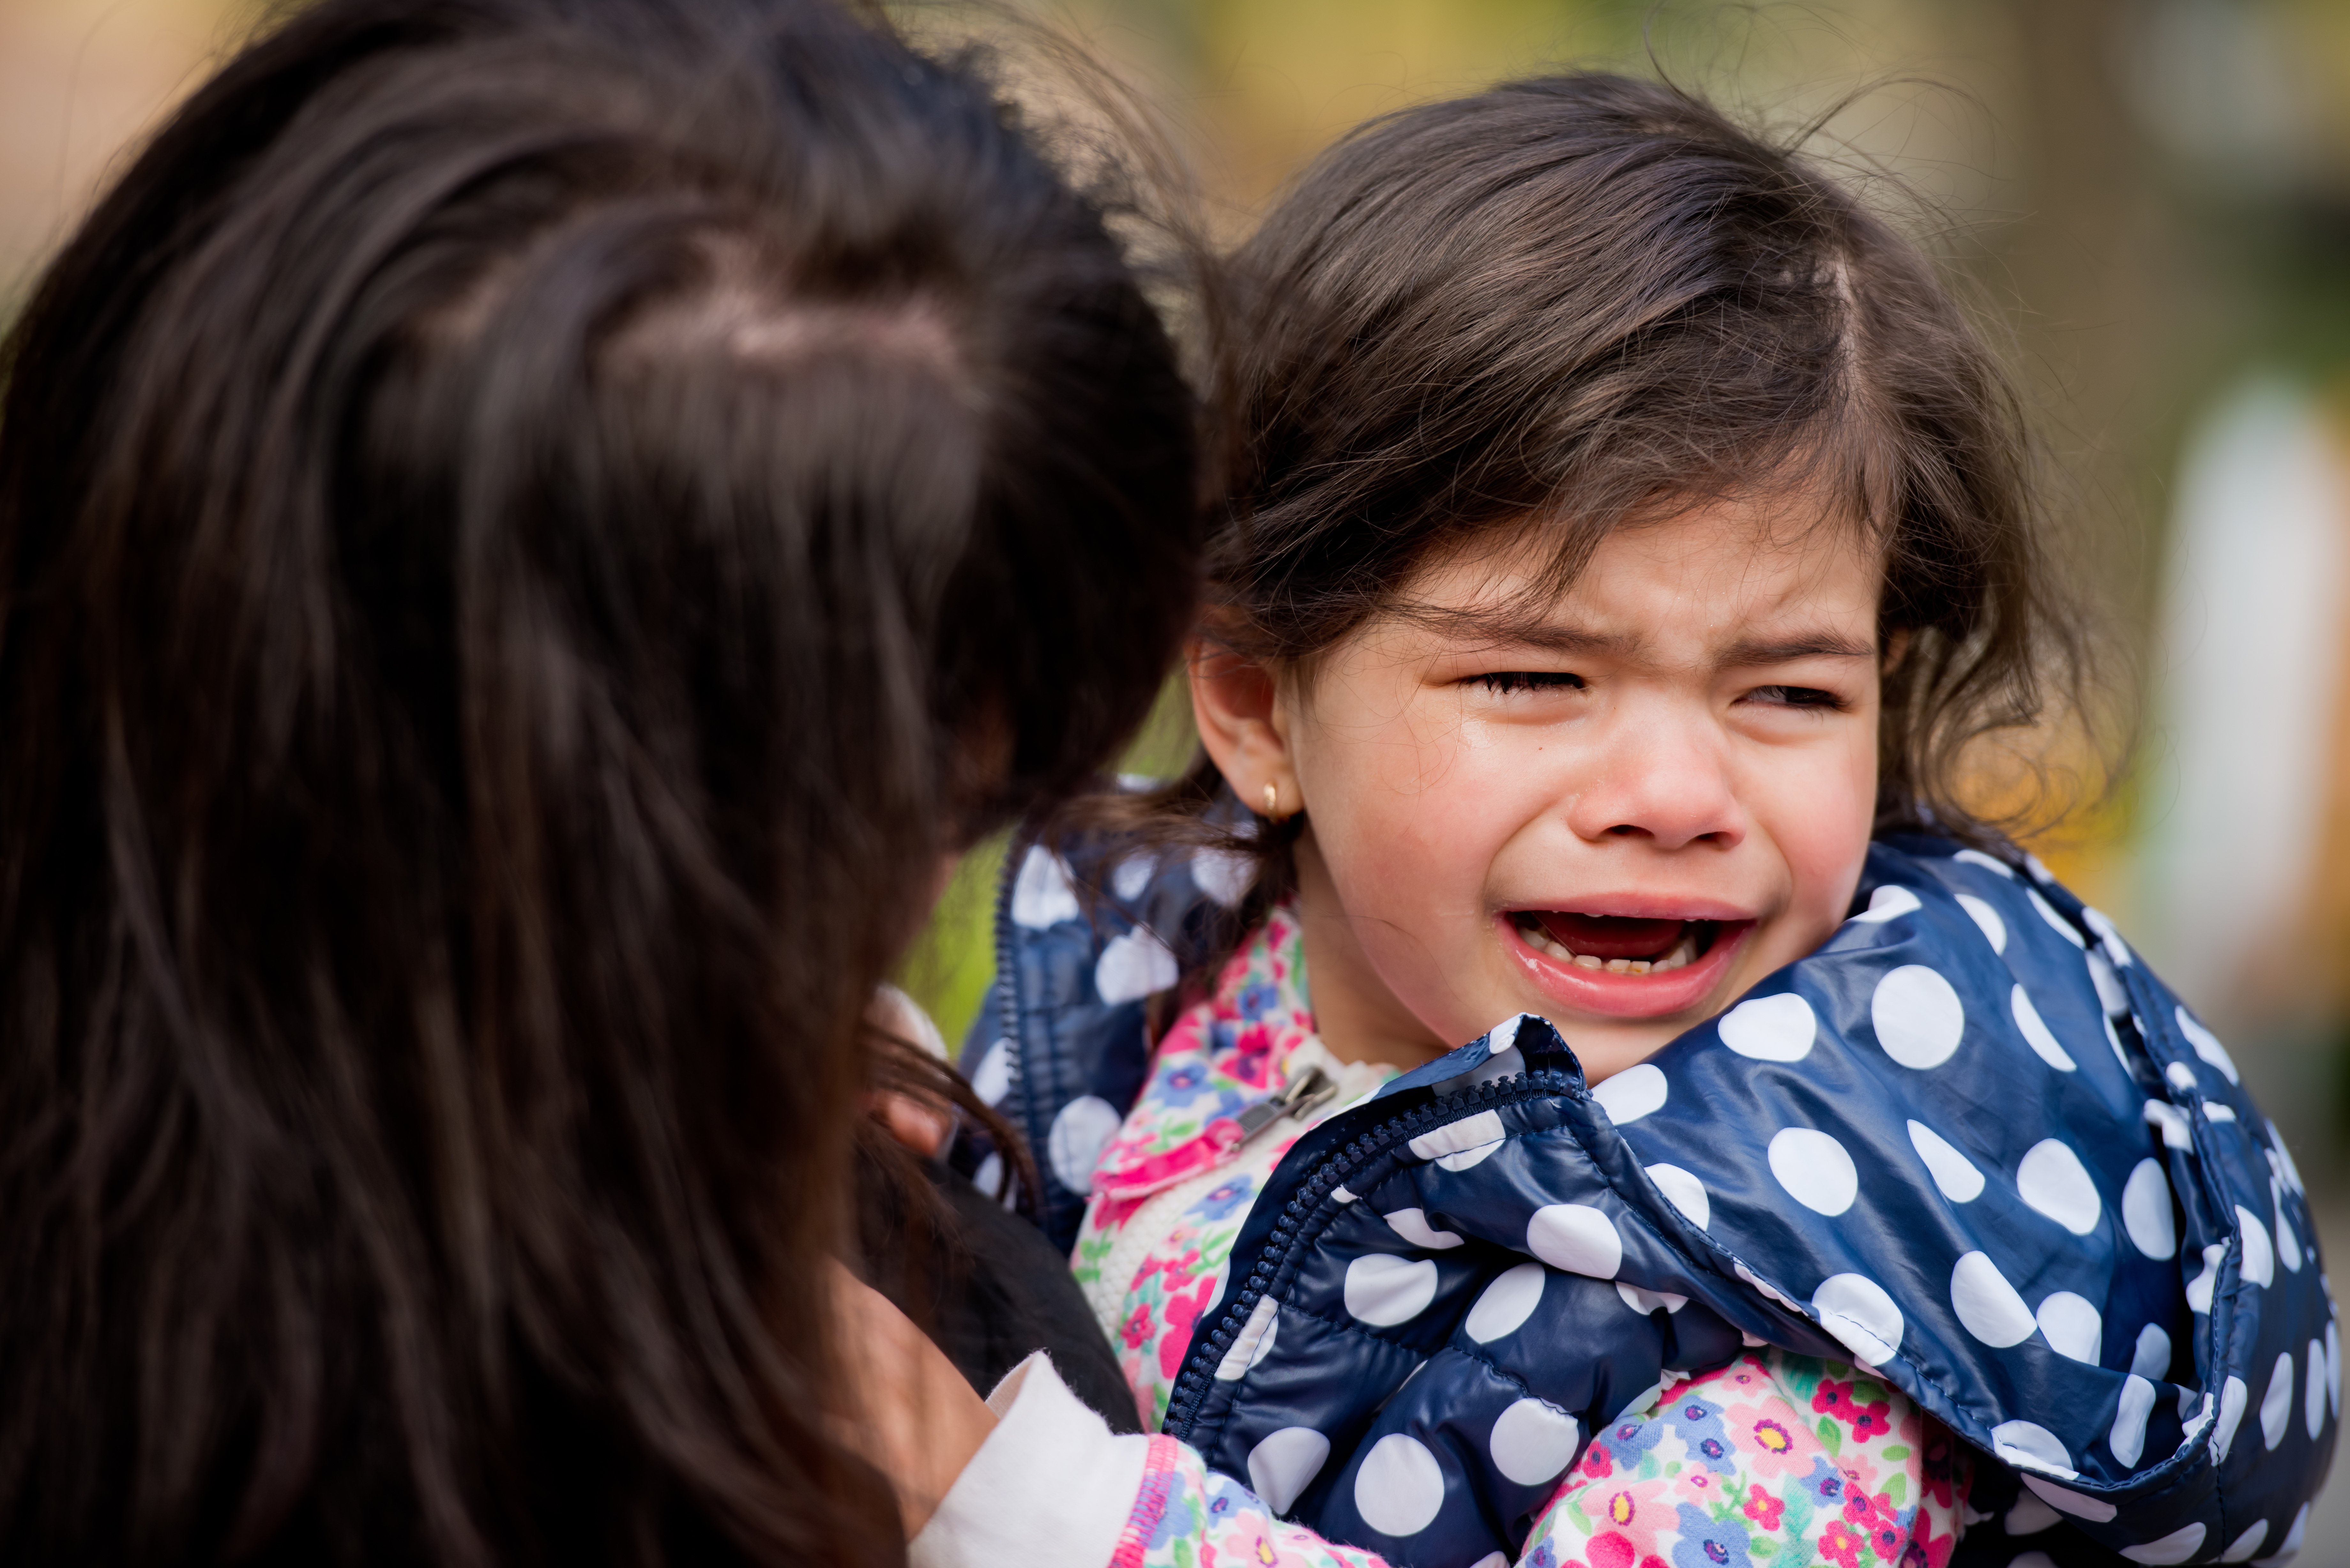 Whining, Tantrums in almost-2 year old -- Does she just need to cry?